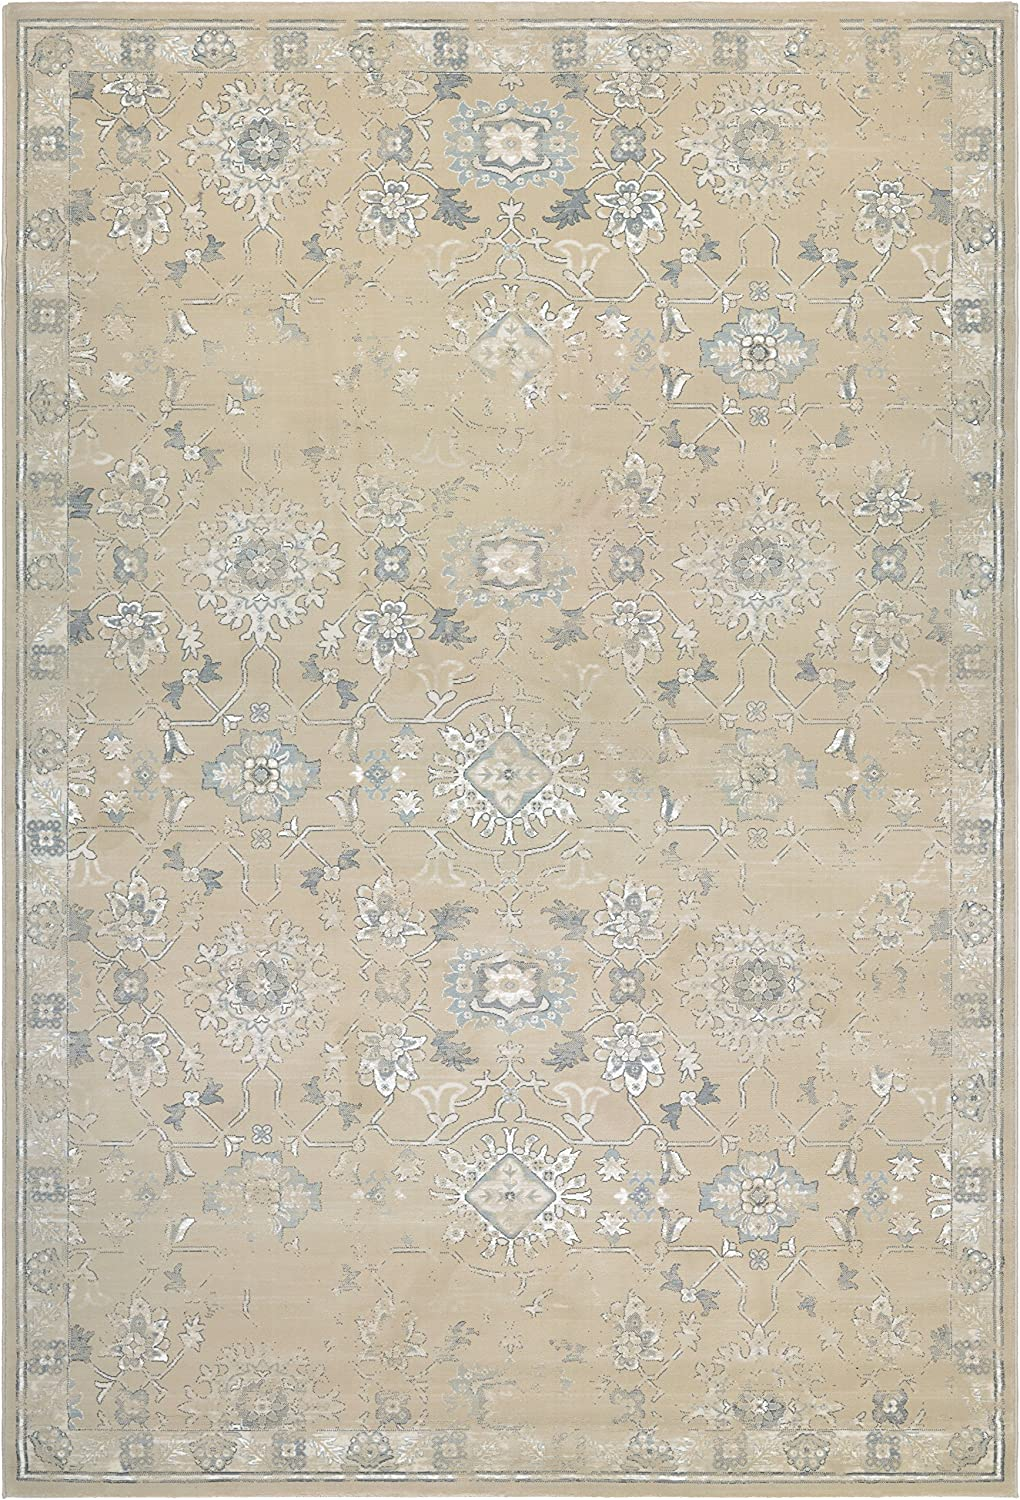 Couristan Provincia Odette Area Rug in Beige/Cream on Hello Lovely Studio. #arearugs #frenchcountry #mutedcolors #serenedecor